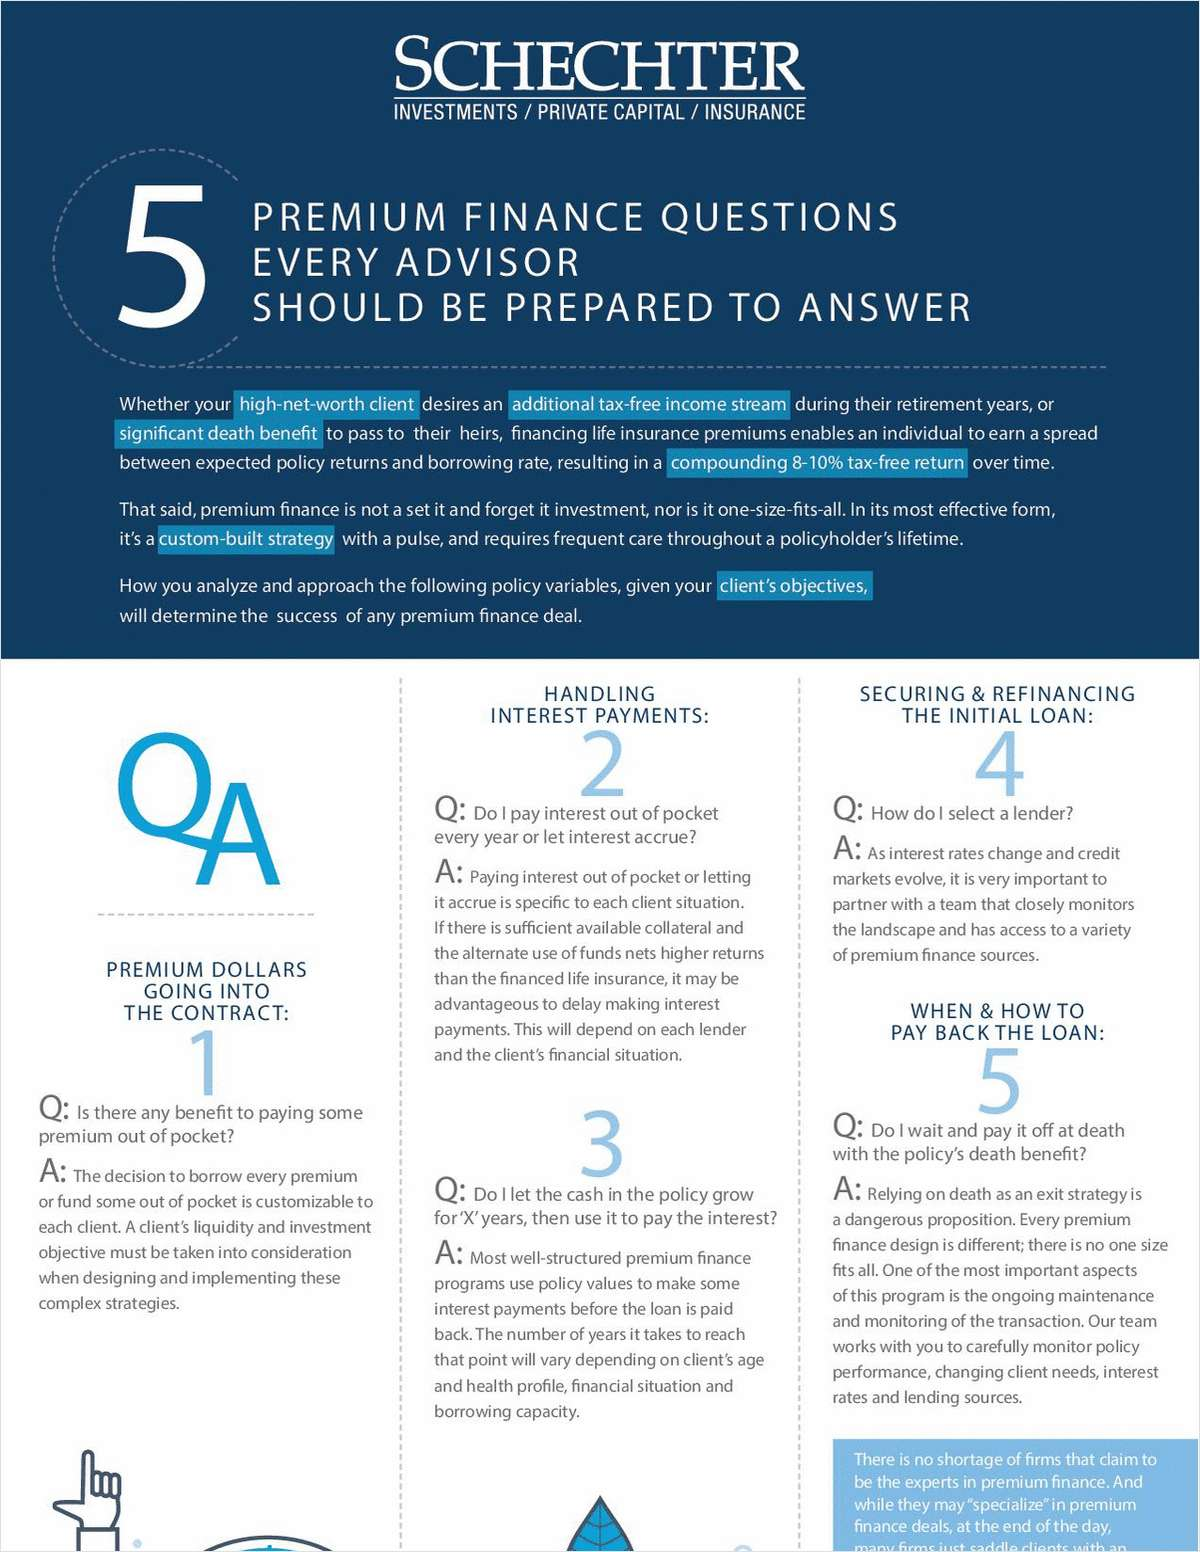 5 Premium Finance Questions Every Advisor Should Be Prepared to Answer